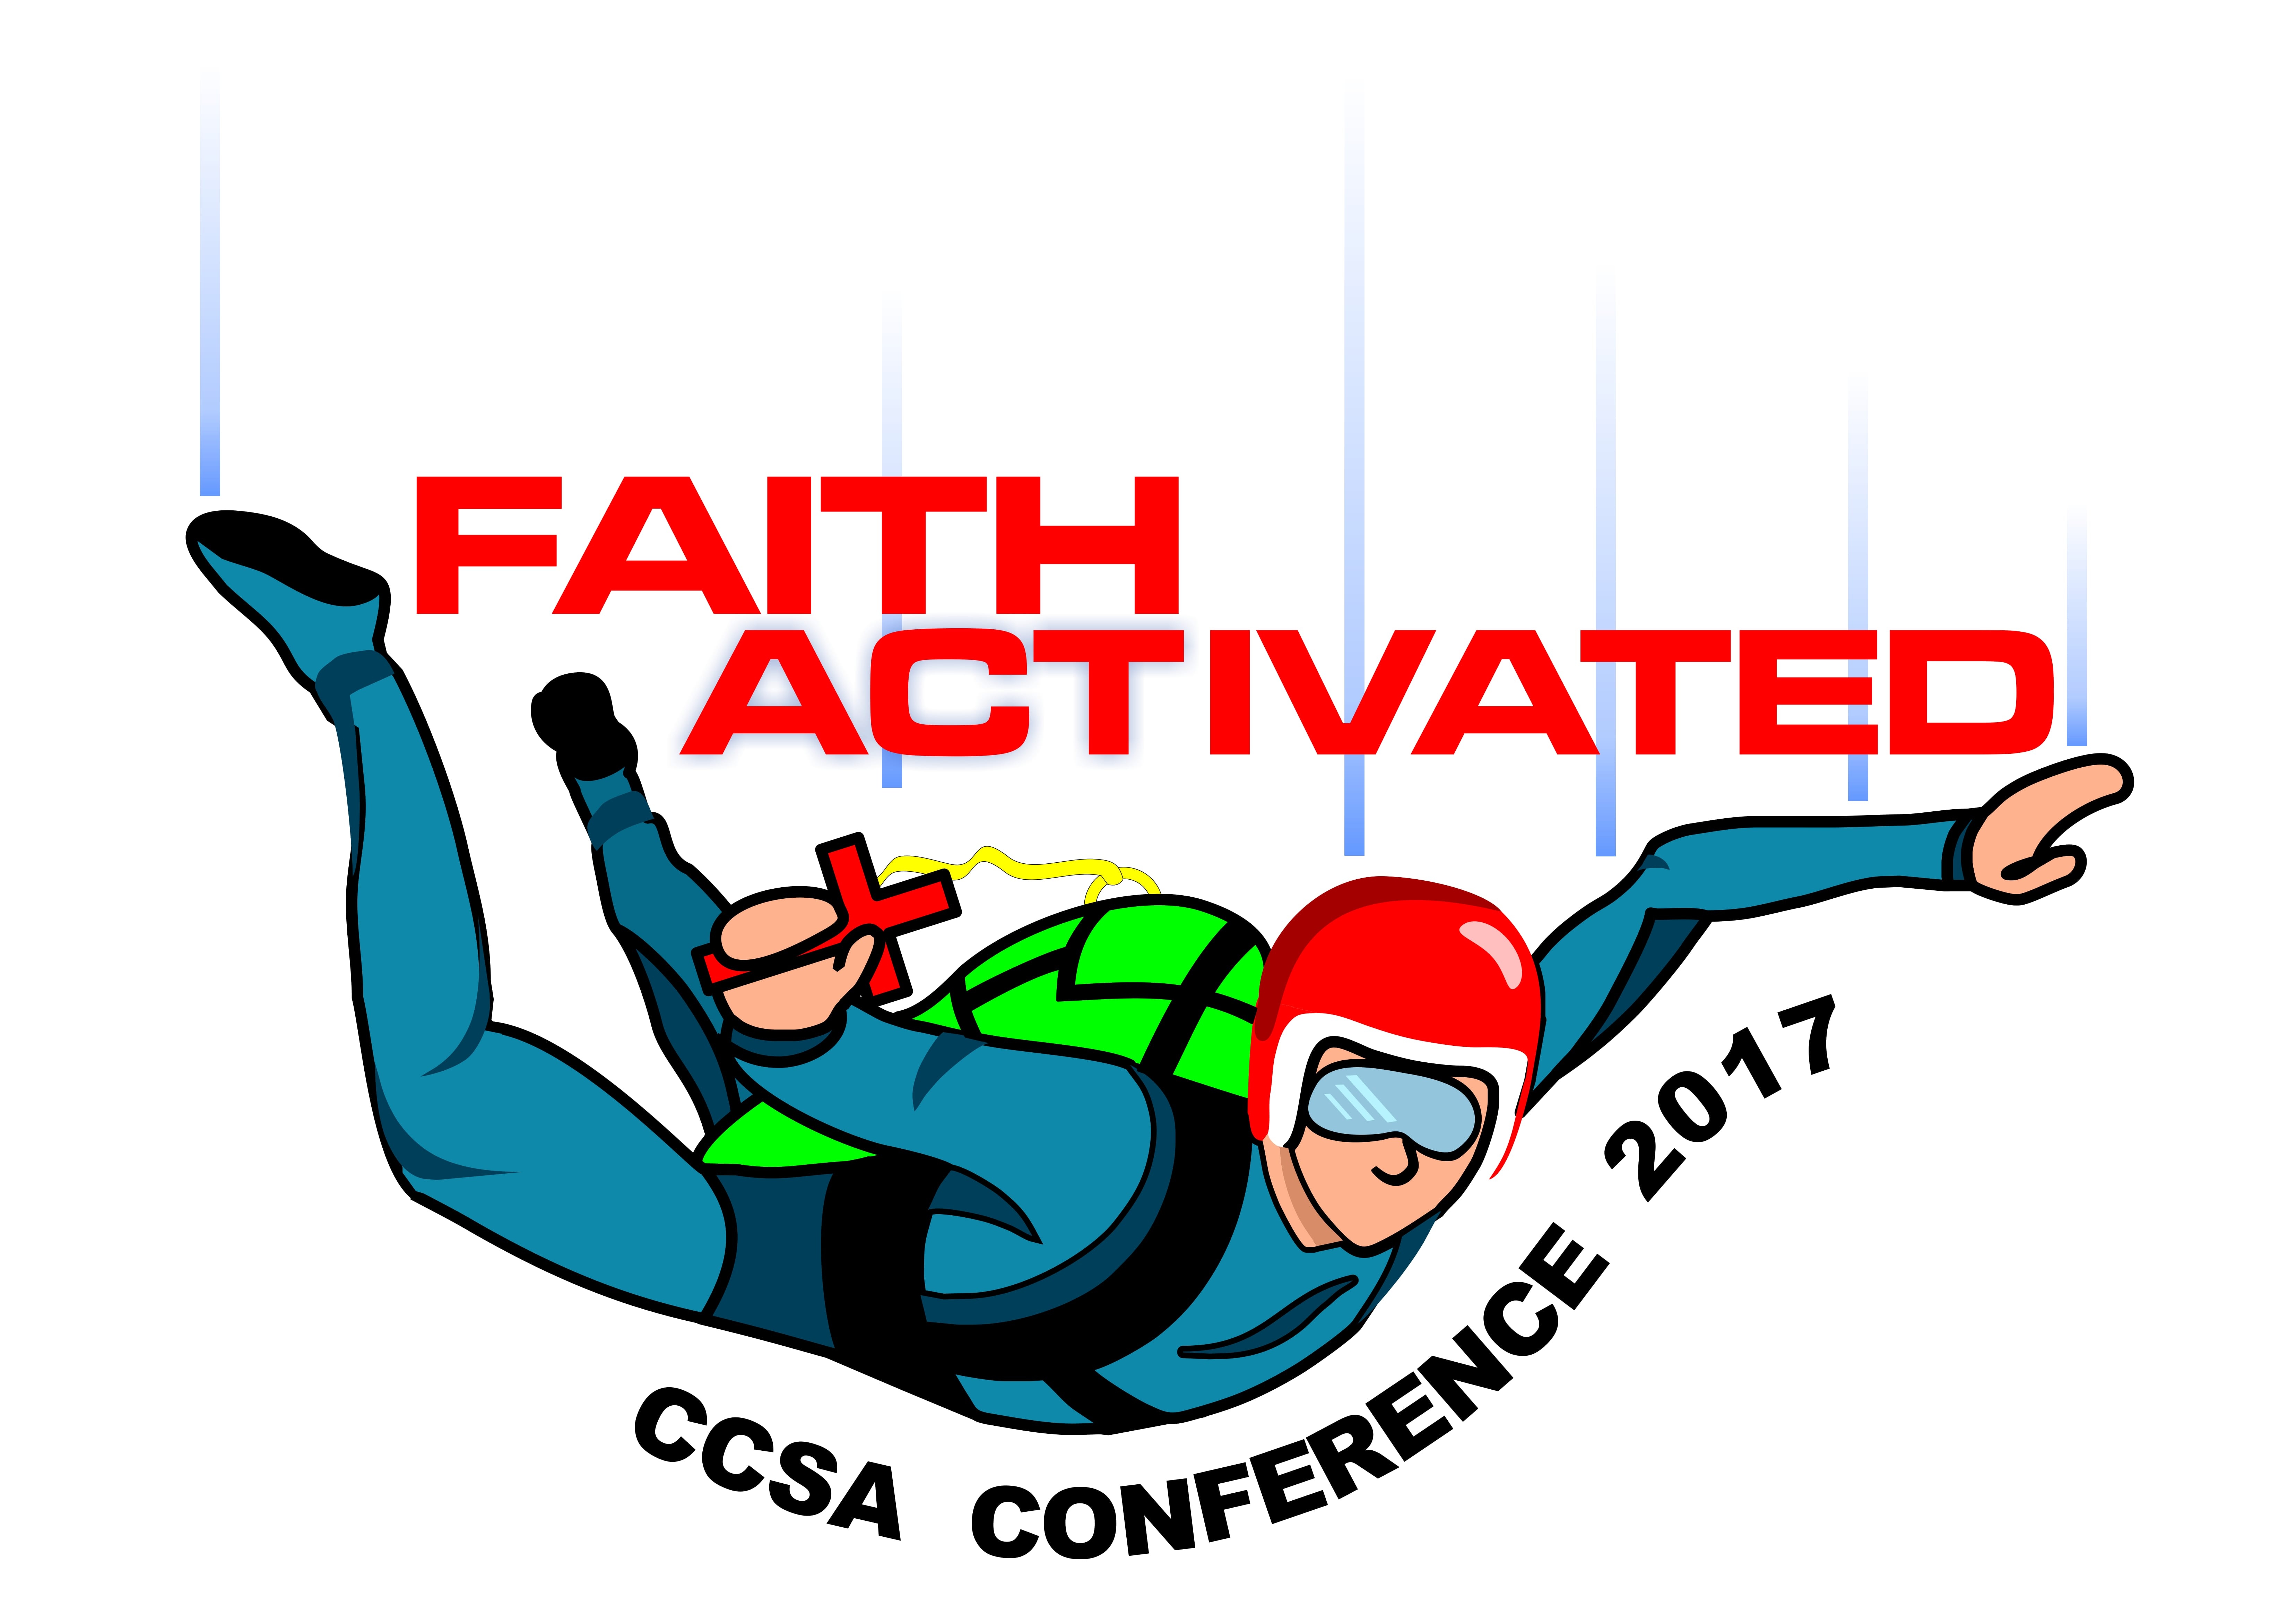 Yearly CCSA Conference